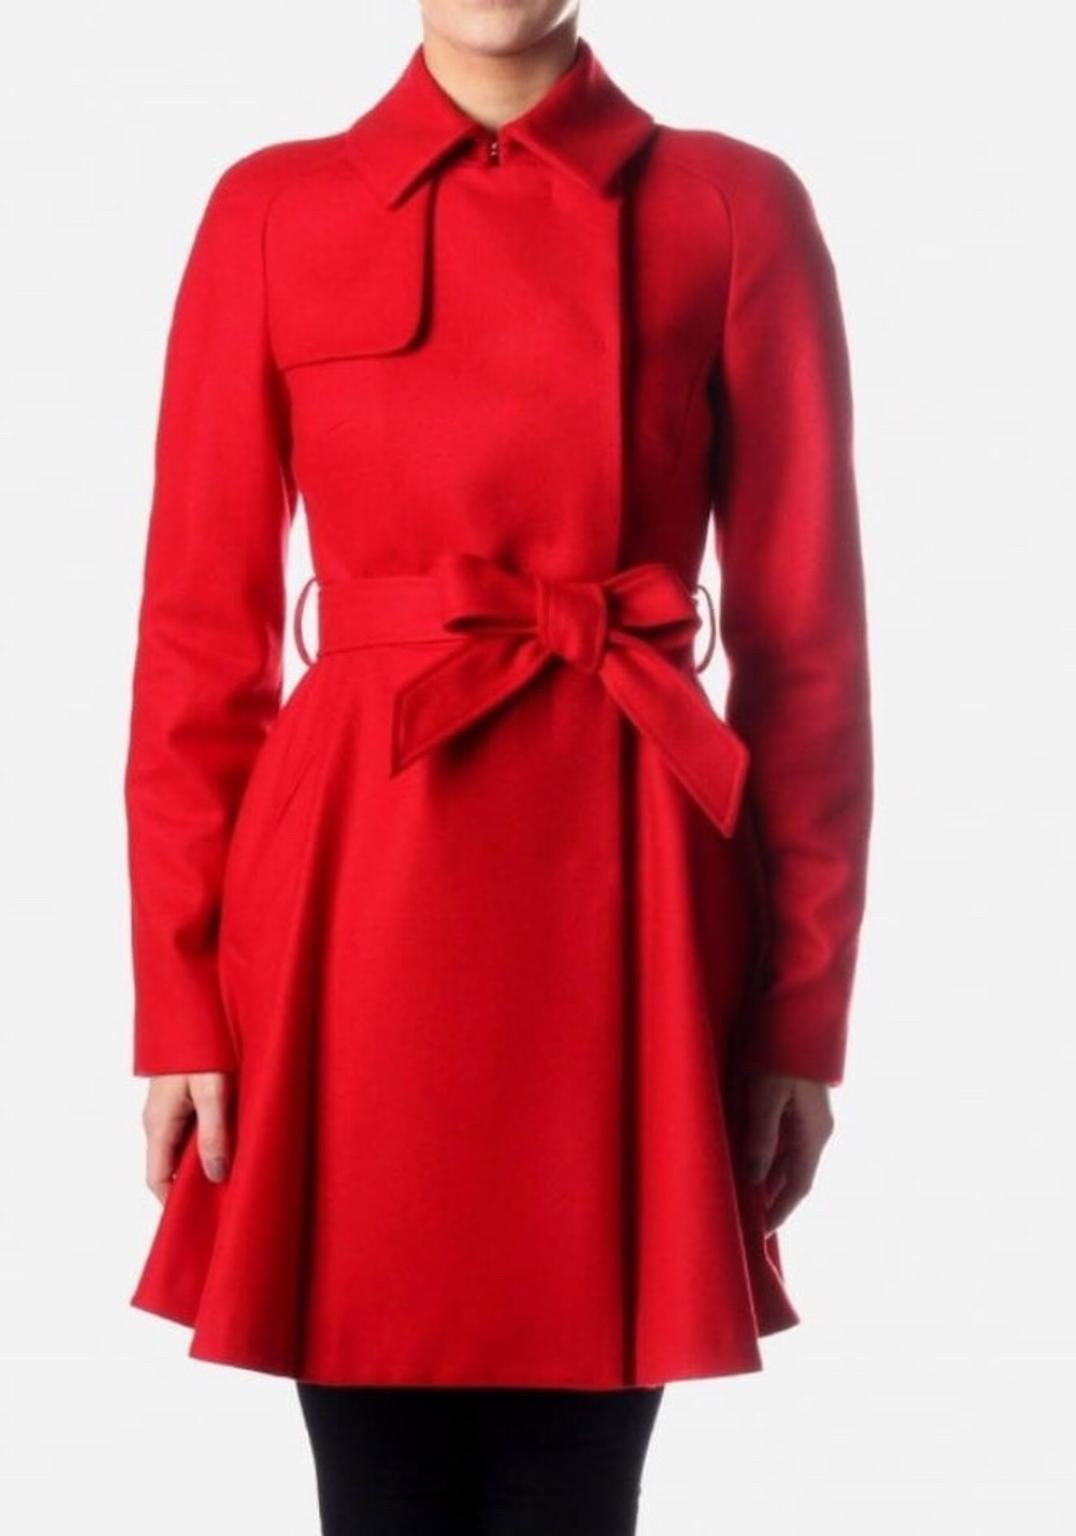 77552a844f9d9 NEW Ted Baker coat red size TB2  UK10 in SW6 London for £160.00 for sale -  Shpock